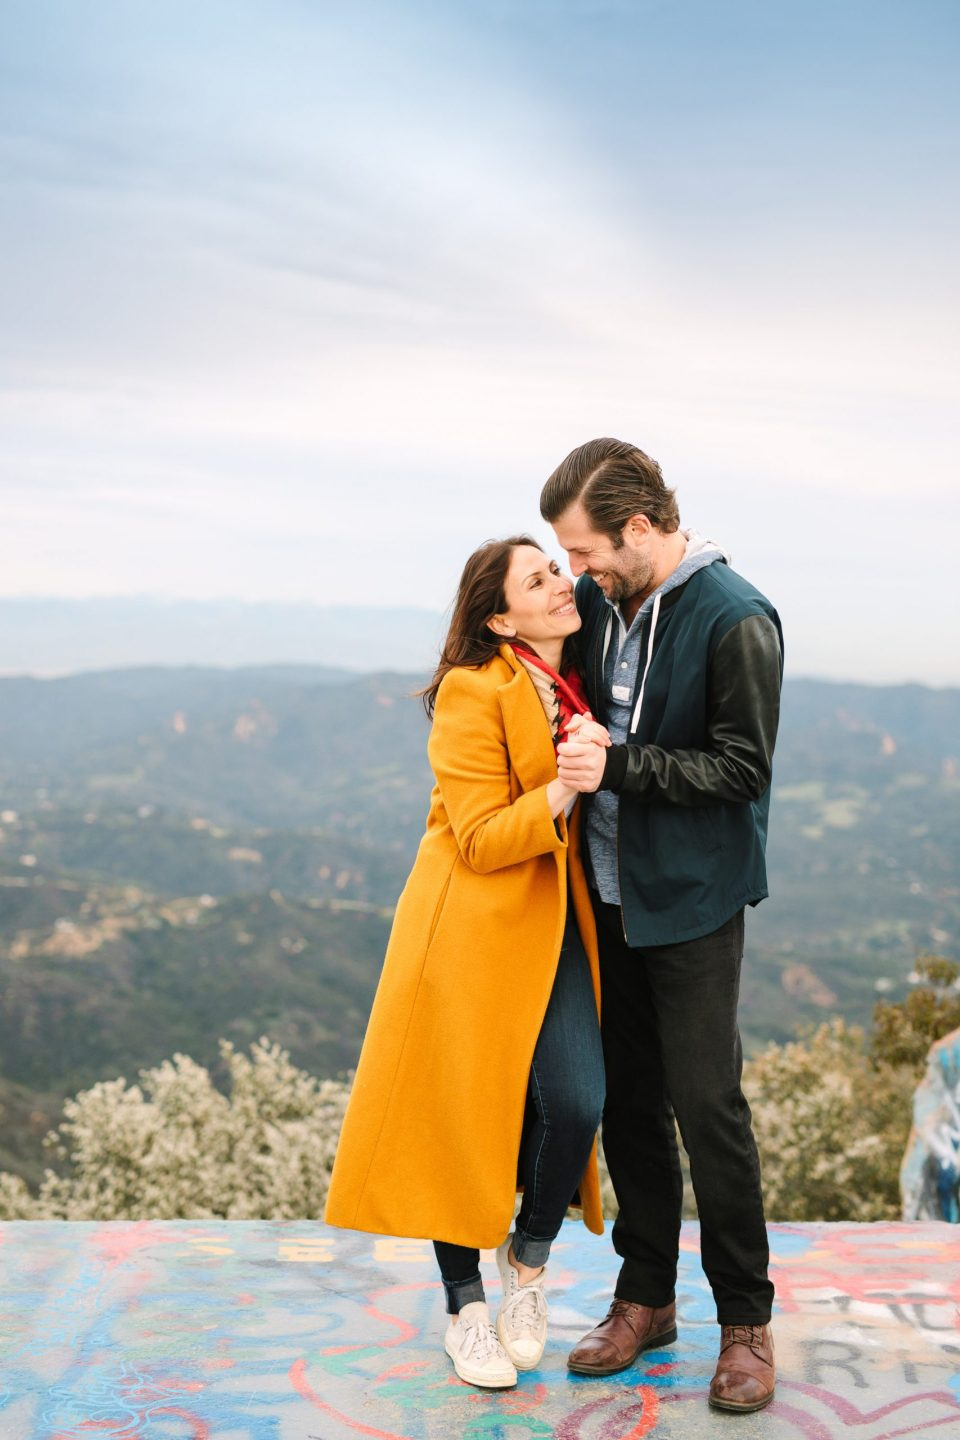 Autumn engagement session in Topanga, CA by Mary Costa Photography